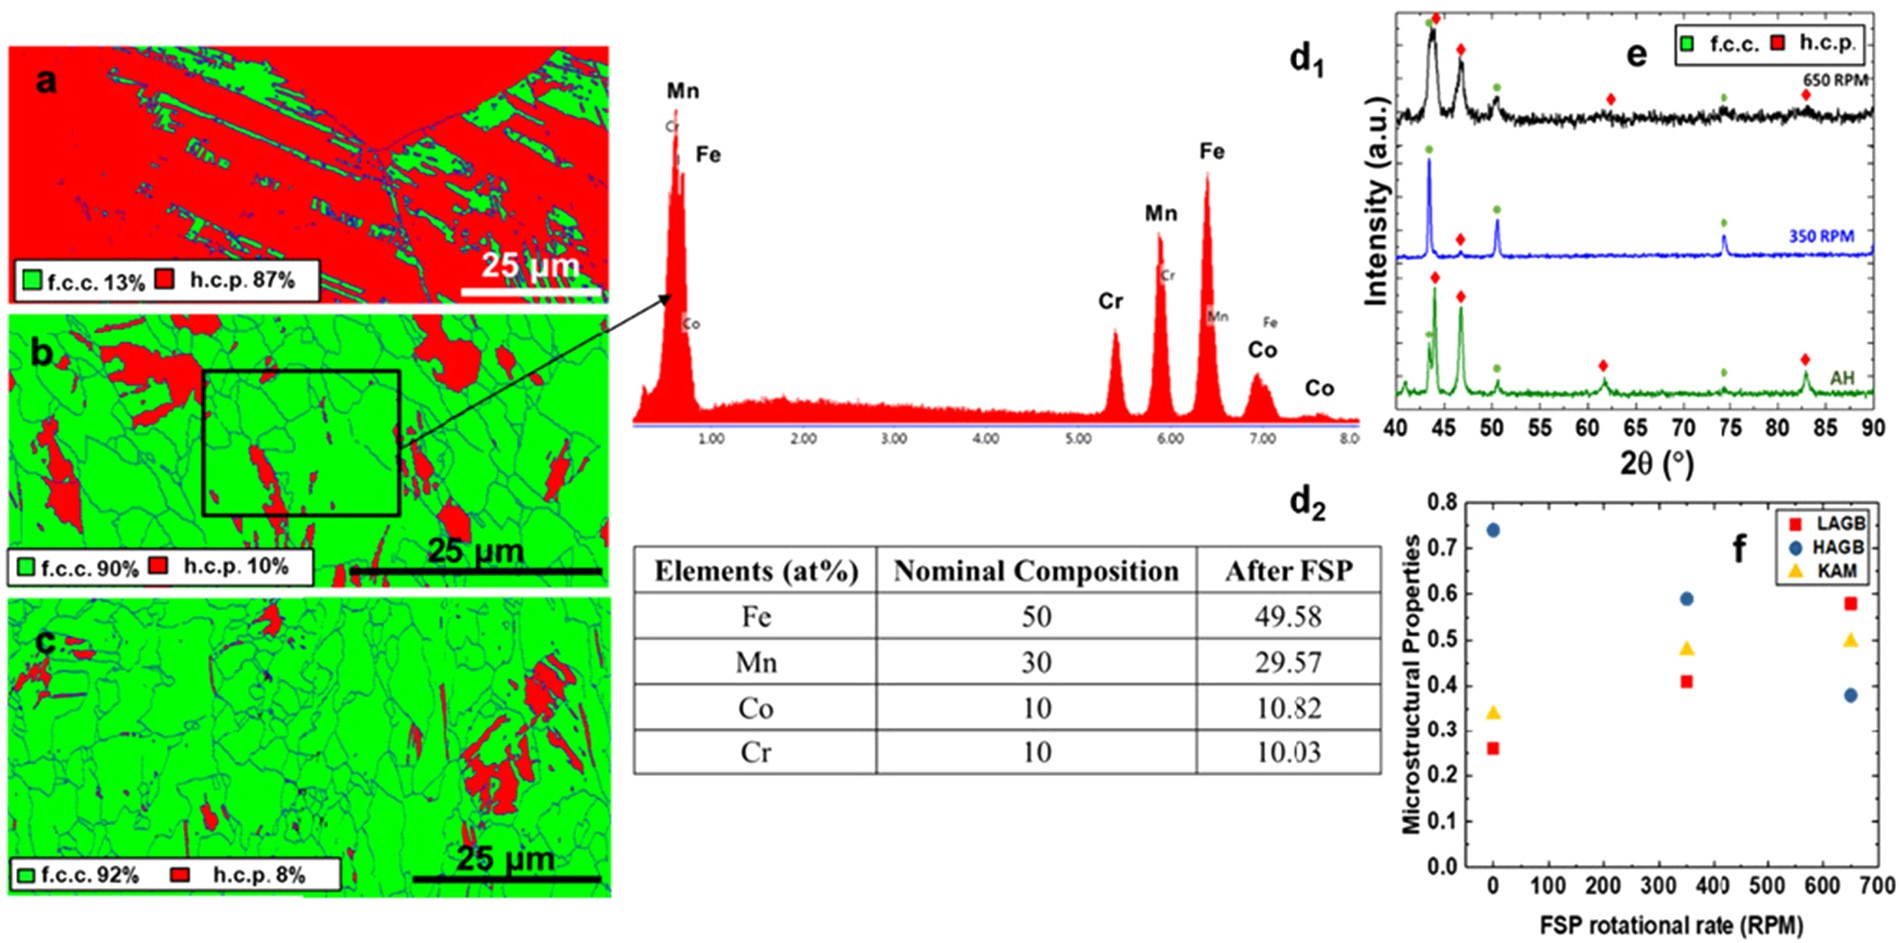 Enhanced Strength And Ductility In A Friction Stir Processing Welding Diagram Engineered Dual Phase High Entropy Alloy Scientific Reports